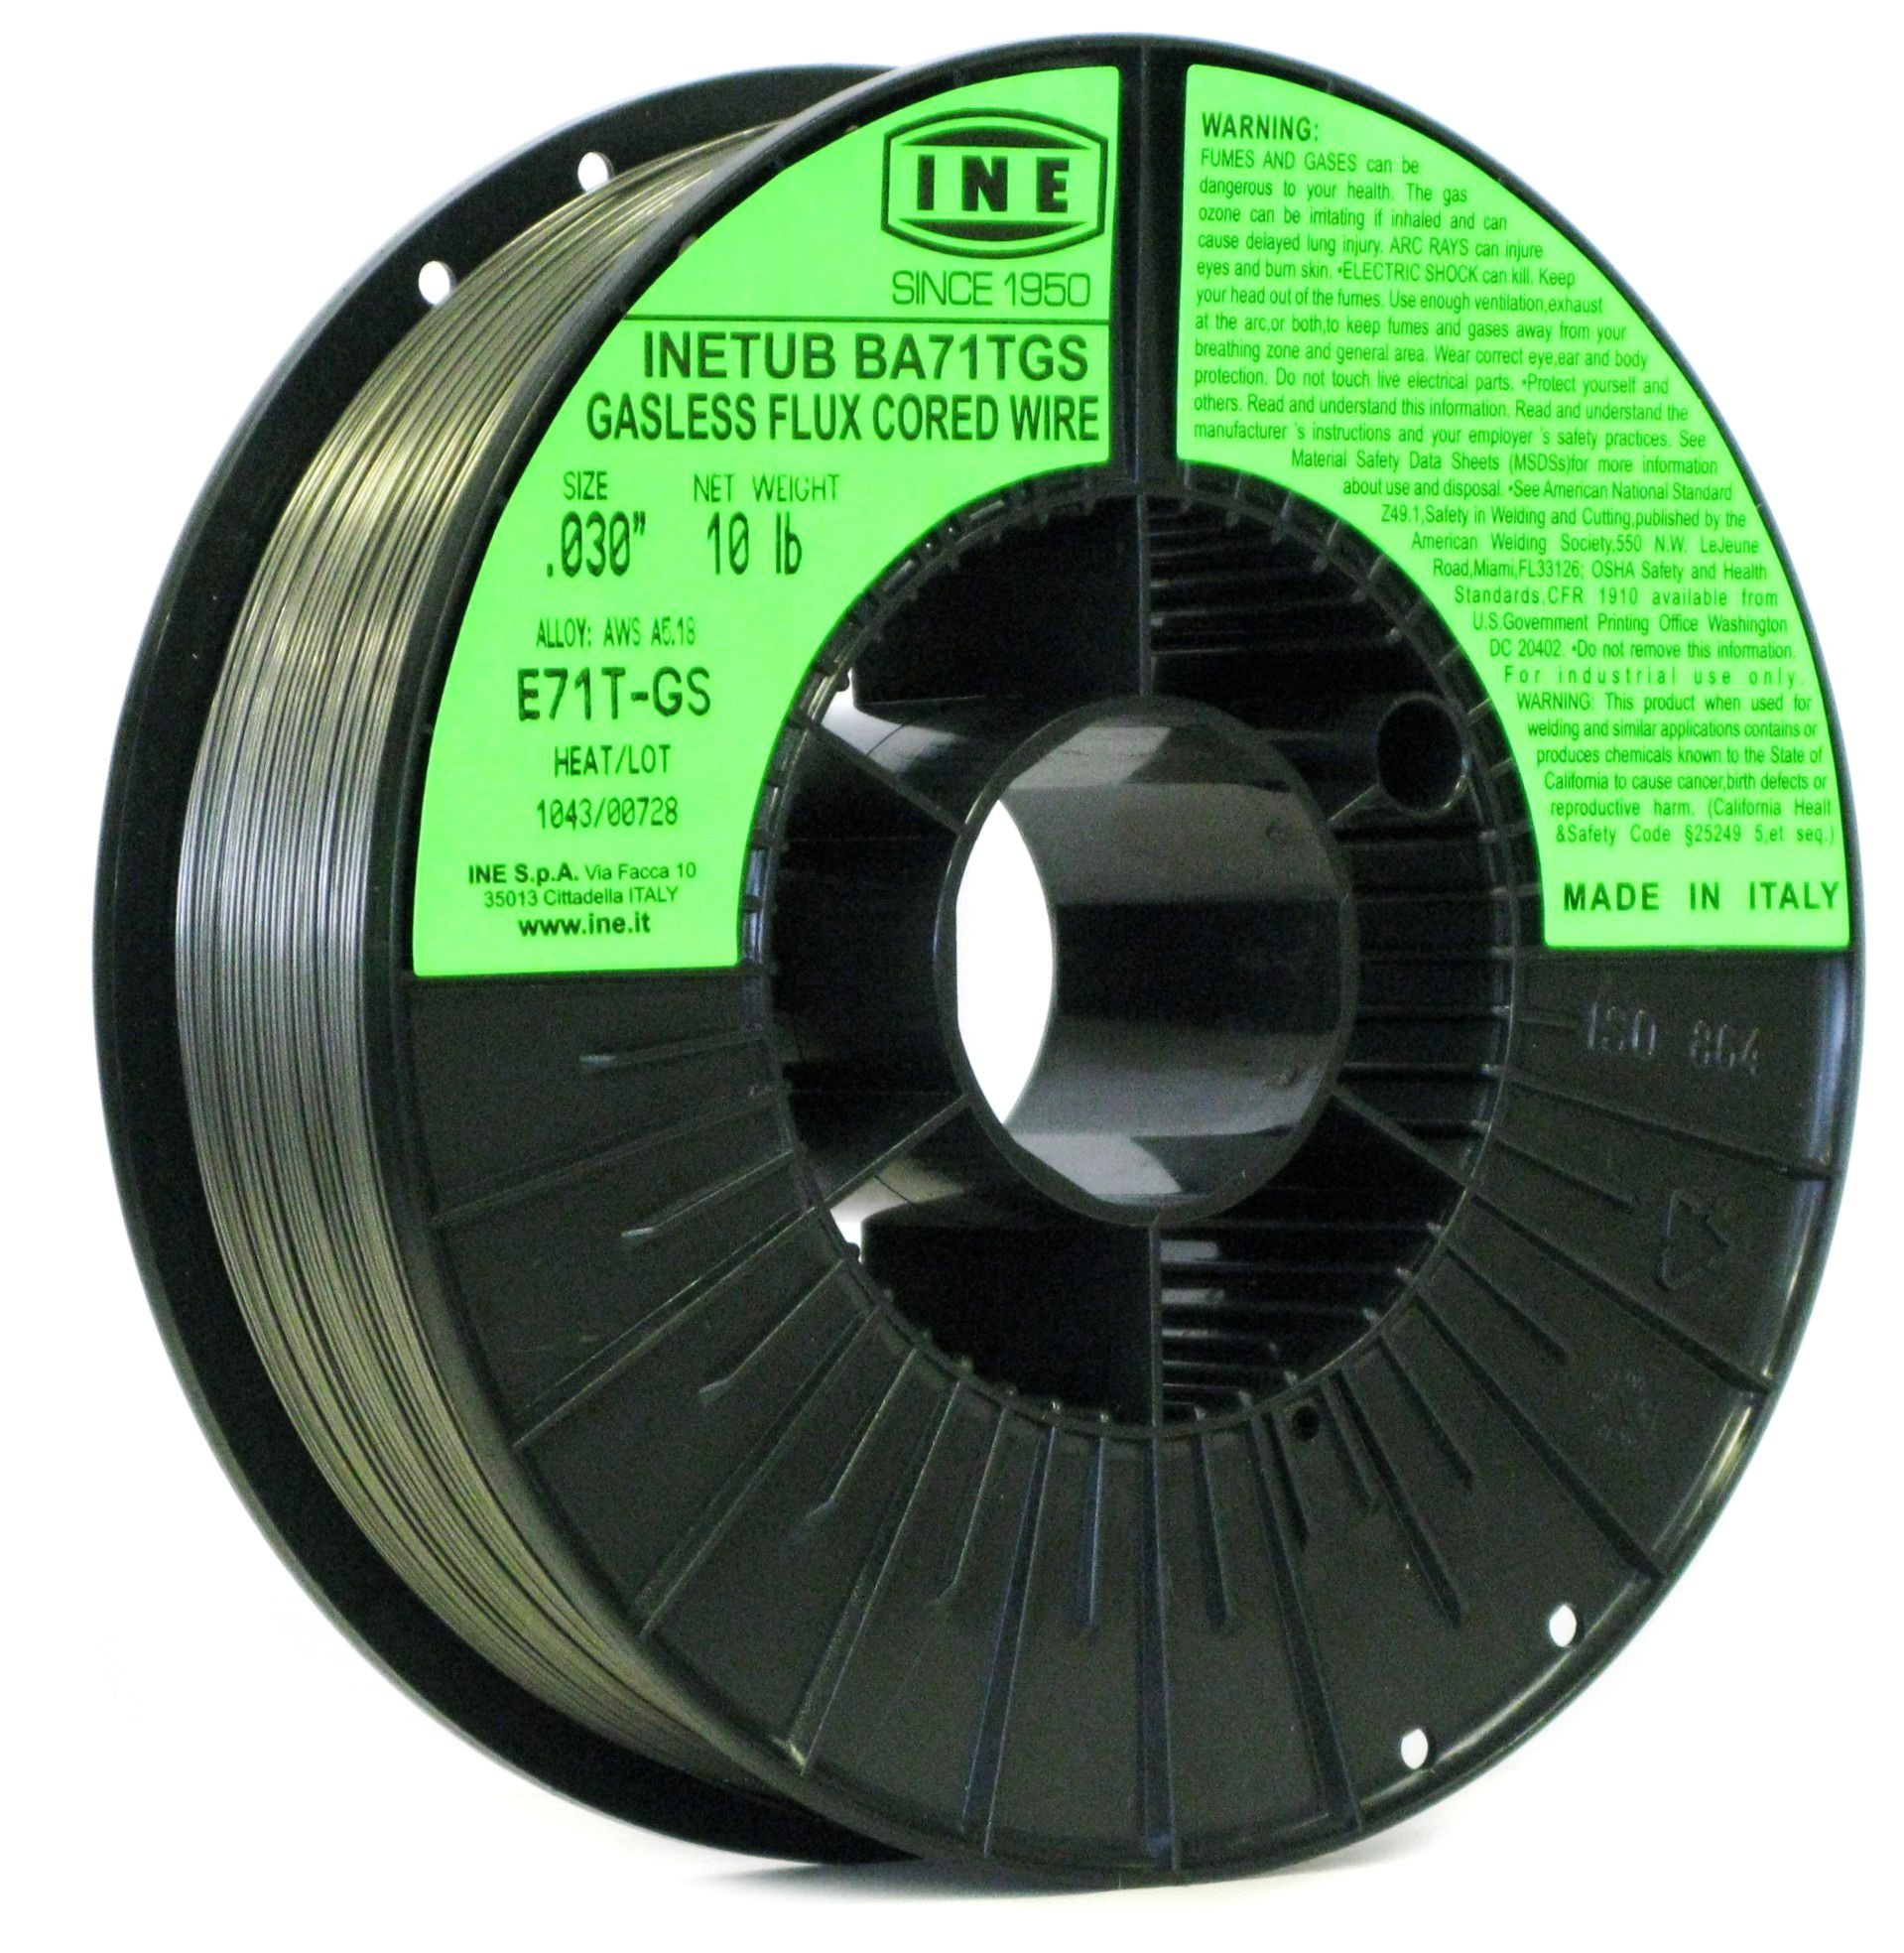 INETUB BA71TGS .030-Inch on 10-Pound Spool Carbon Steel Gasless Flux Cored Welding Wire by INE USA Since 1950